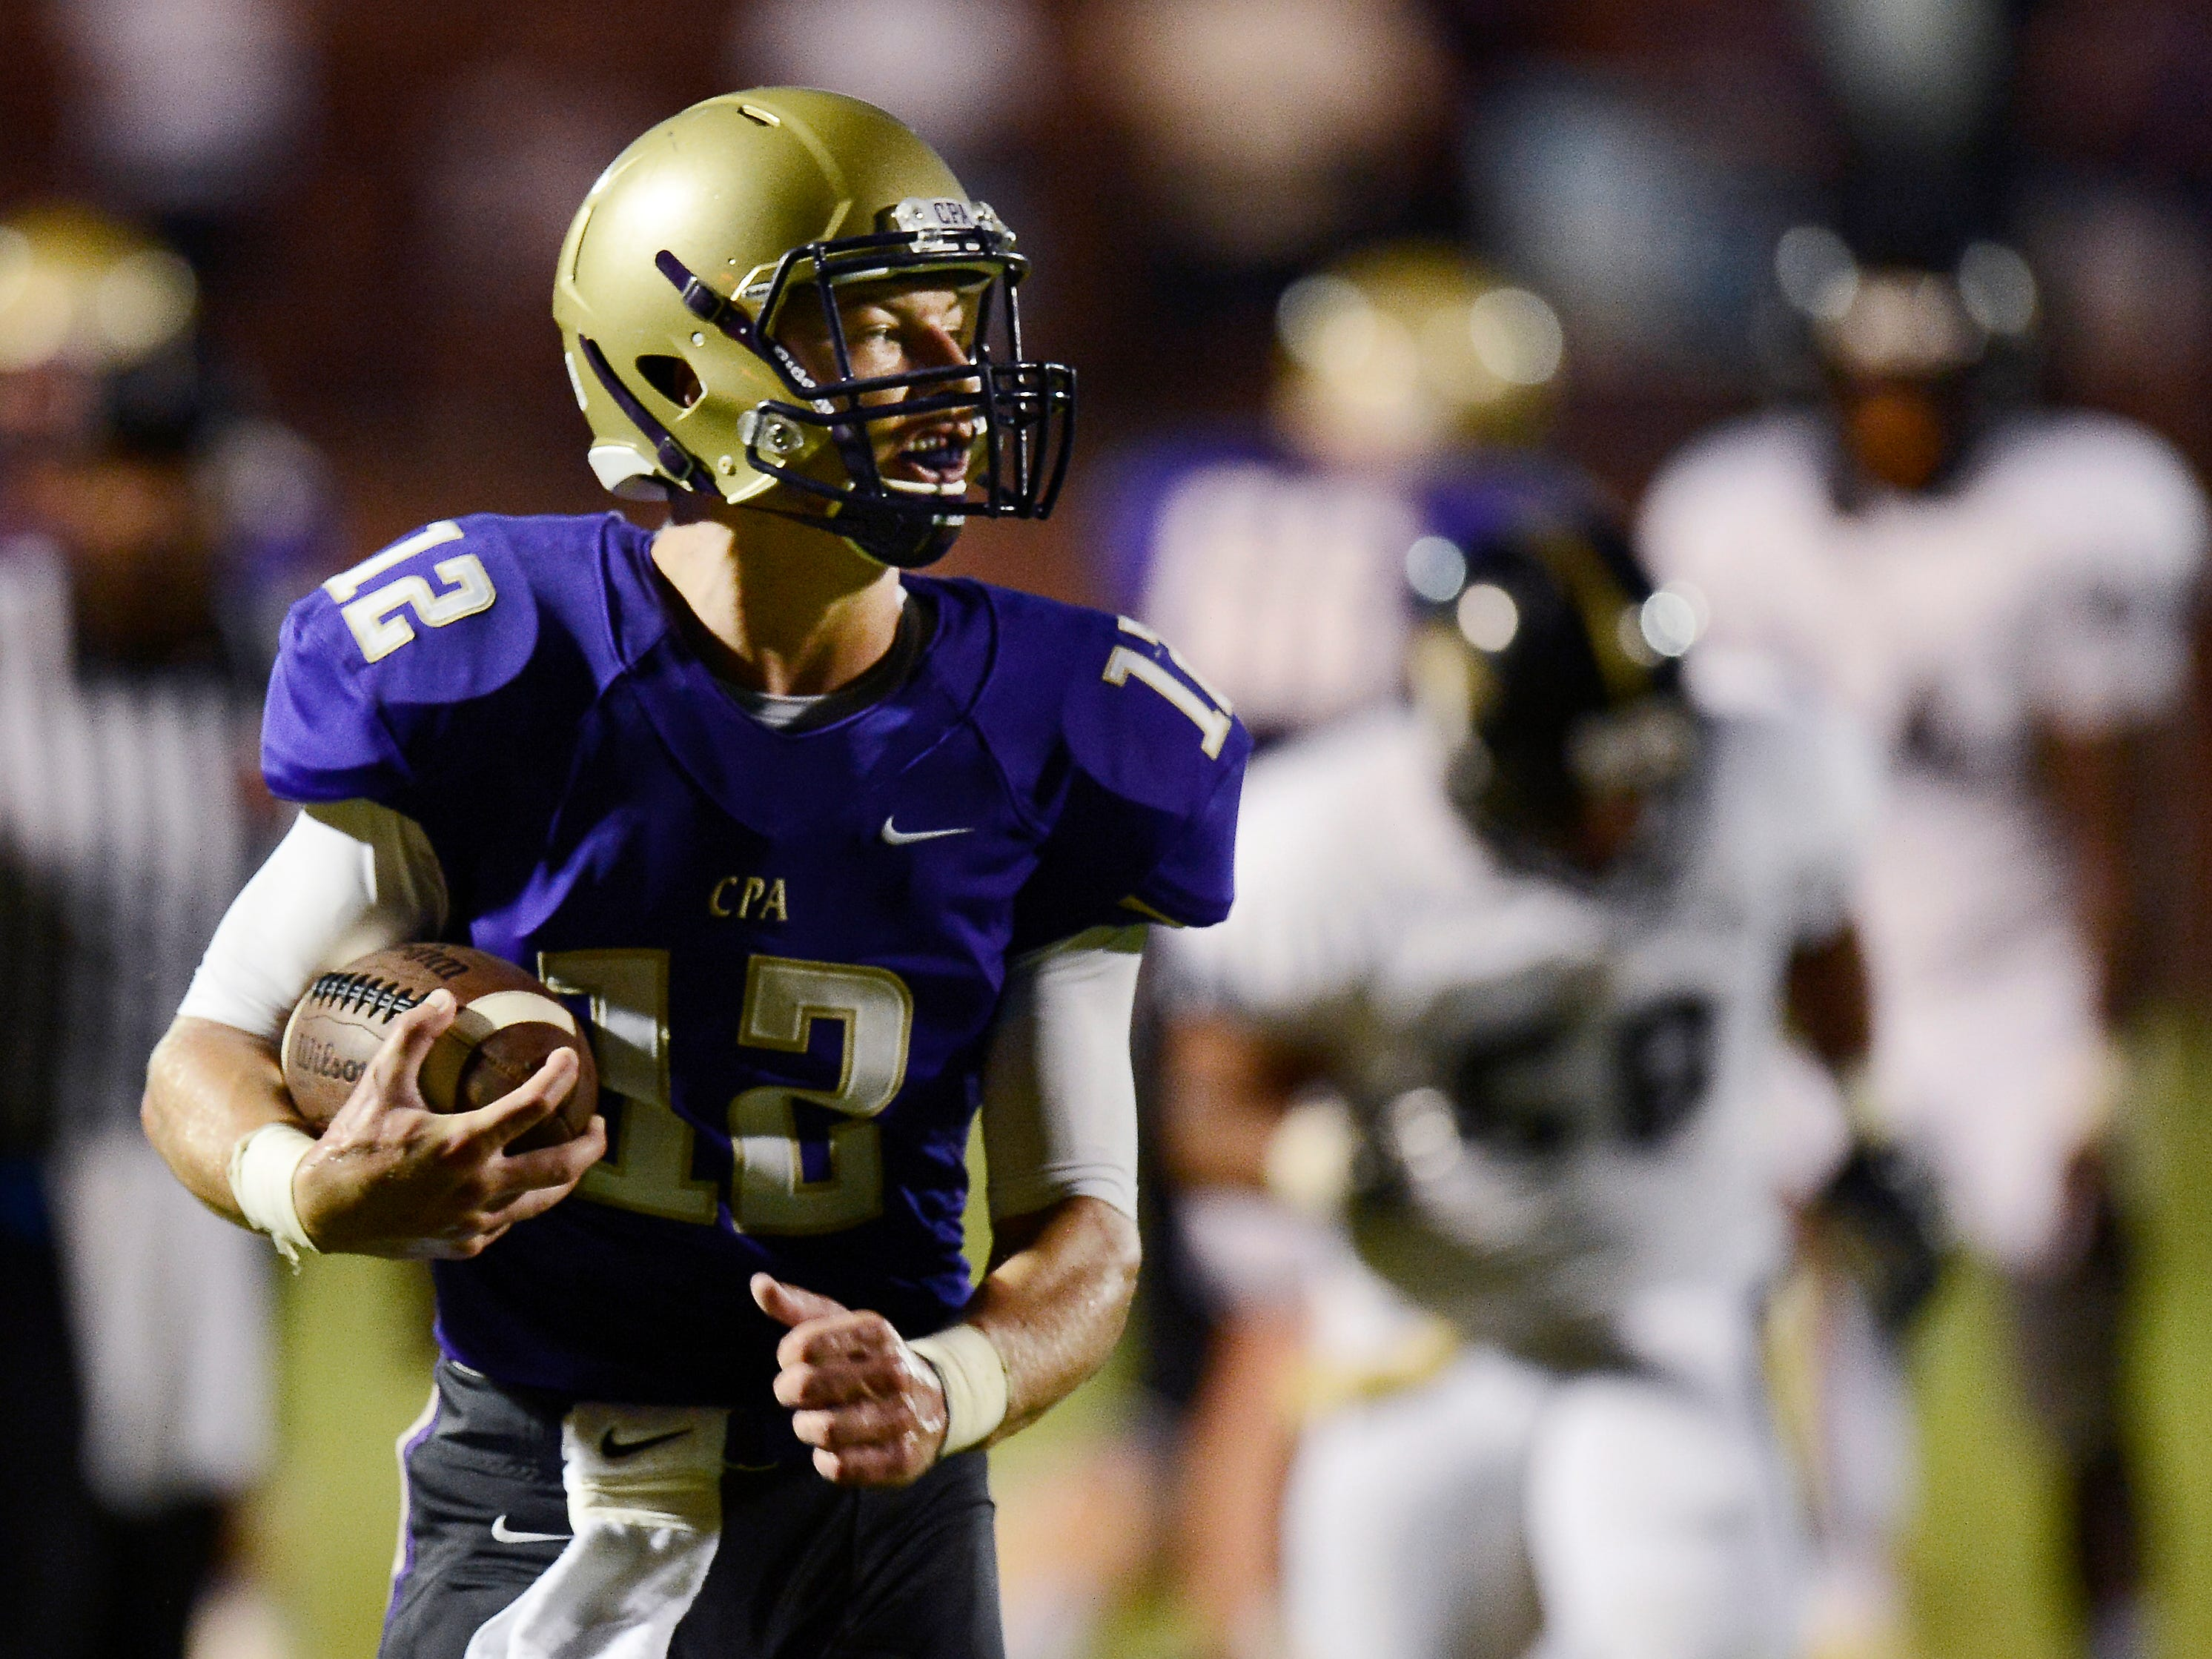 CPA quarterback Jay Hockaday (12) runs for a touchdown against Giles County earlier in the season. The Lions are unbeaten heading into Friday's matchup against Marshall County.